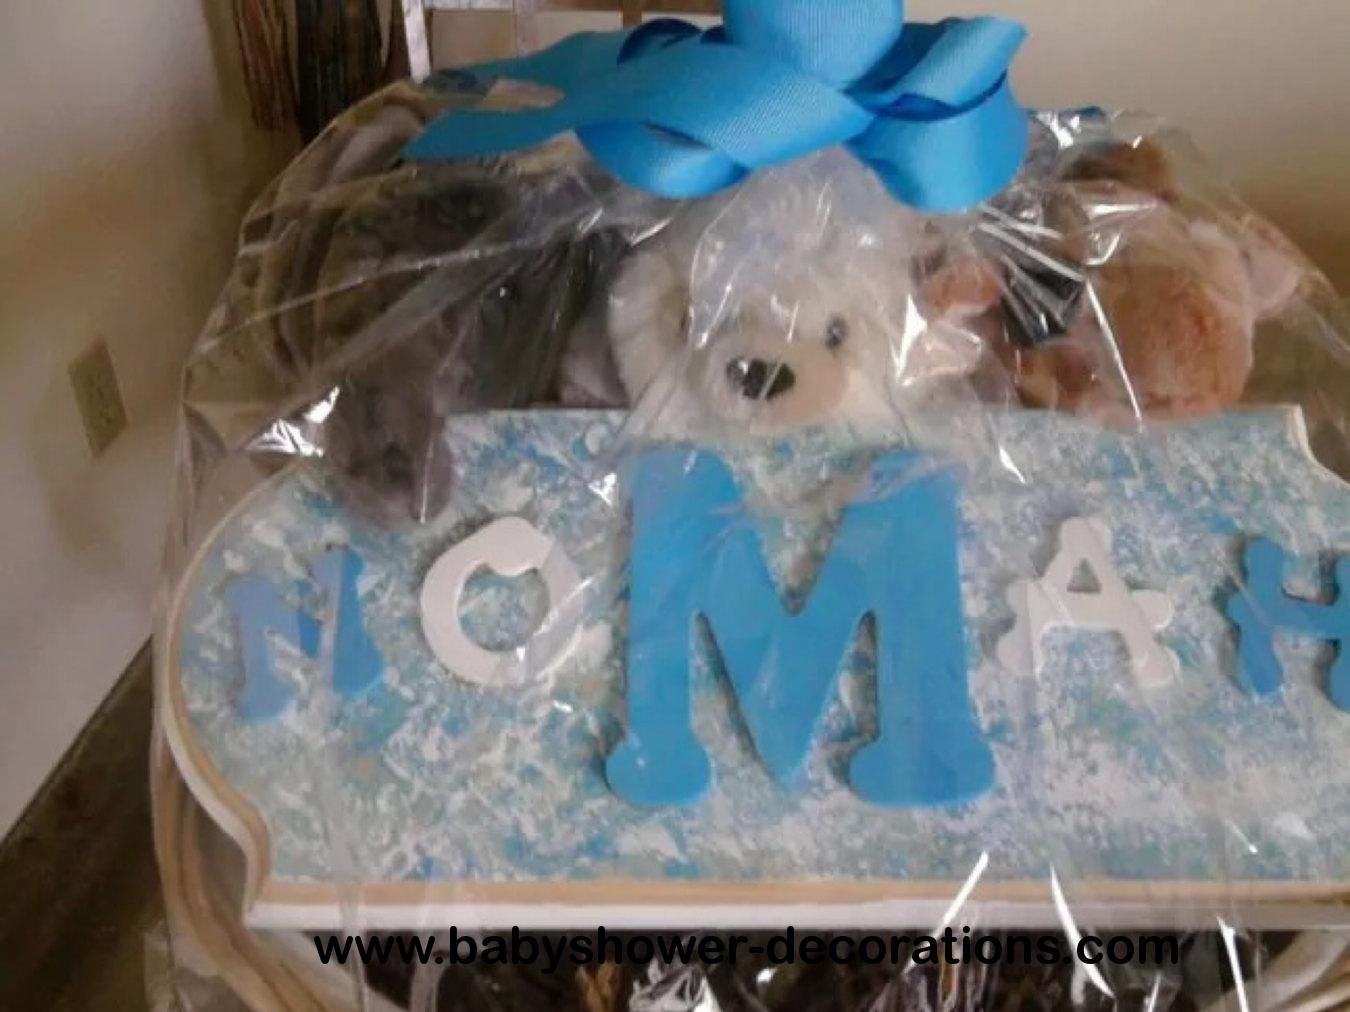 Baby gift basket name plaque stuff animals httpwww baby gift basket name plaque stuff animals http negle Image collections